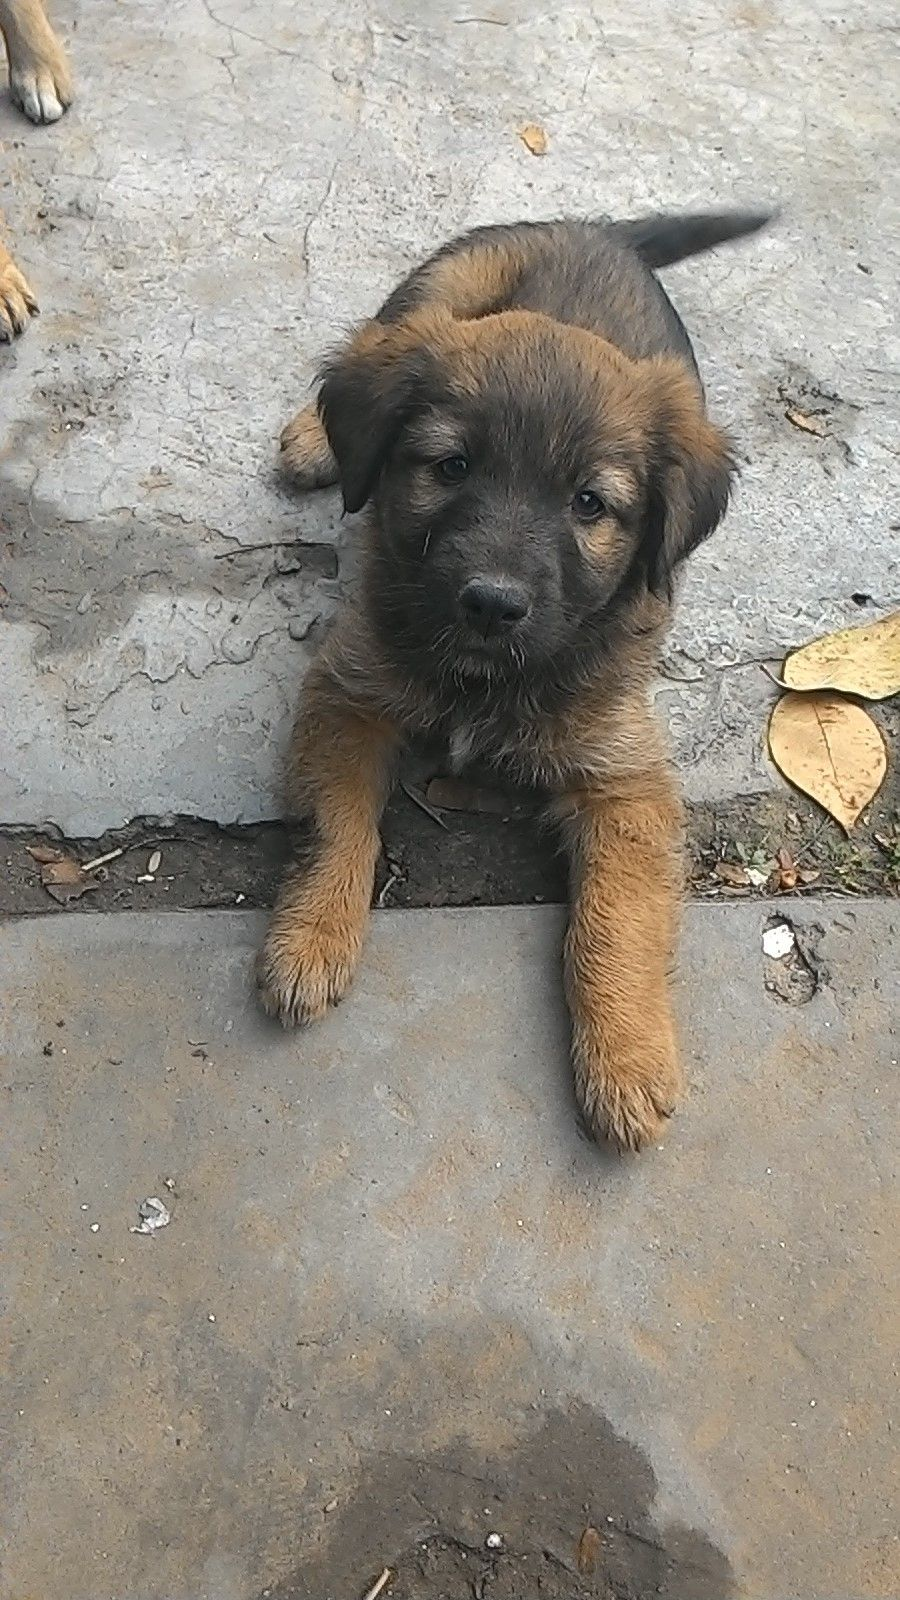 Two Month Old Indi Pup For Adoption In Delhi To Adopt Her Please